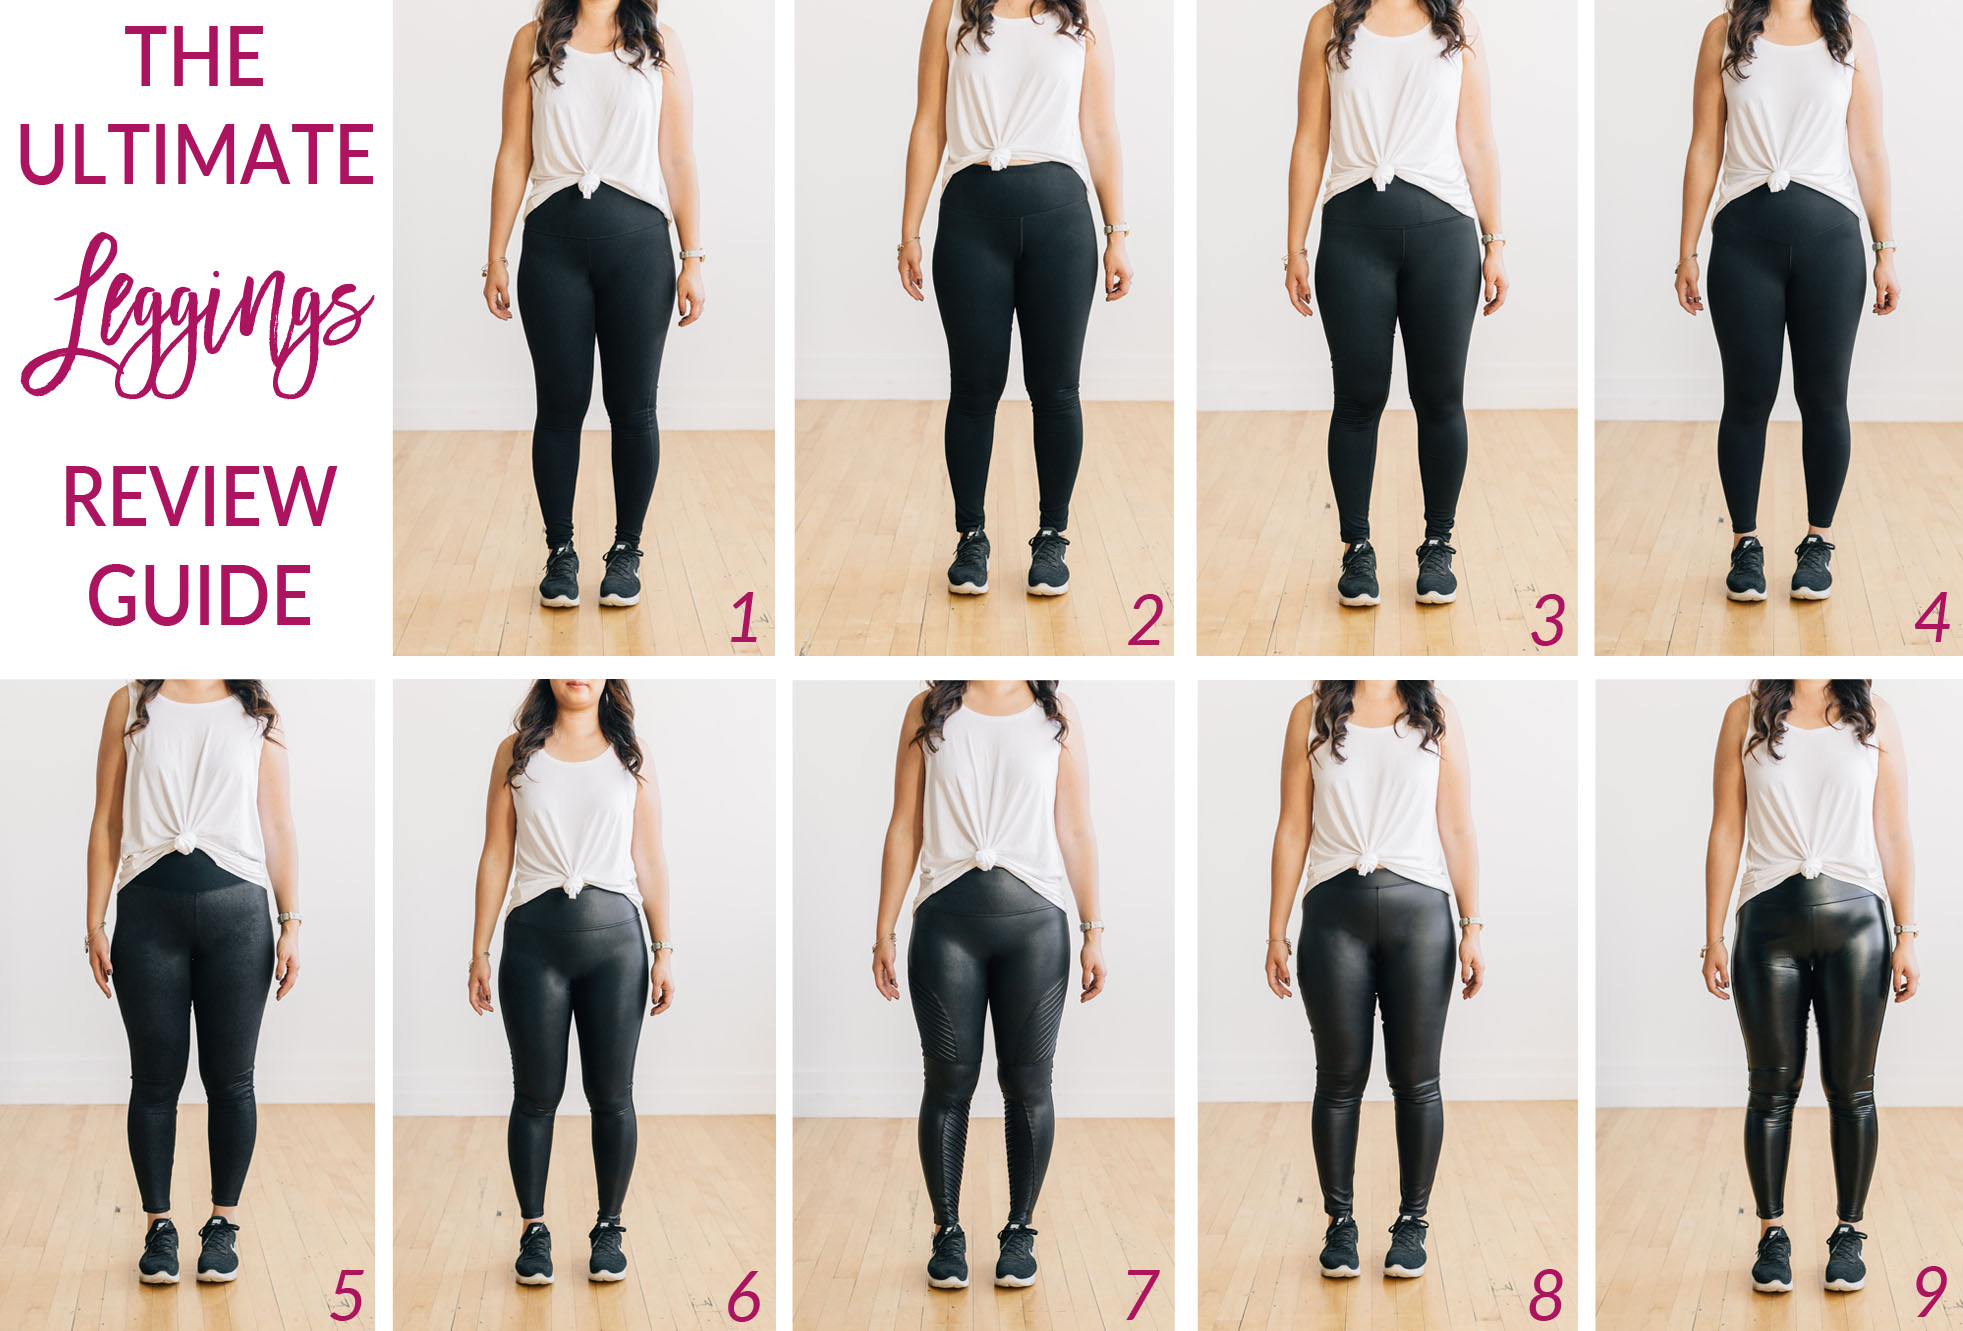 How To Wear Spanx Feaux Leather Leggings